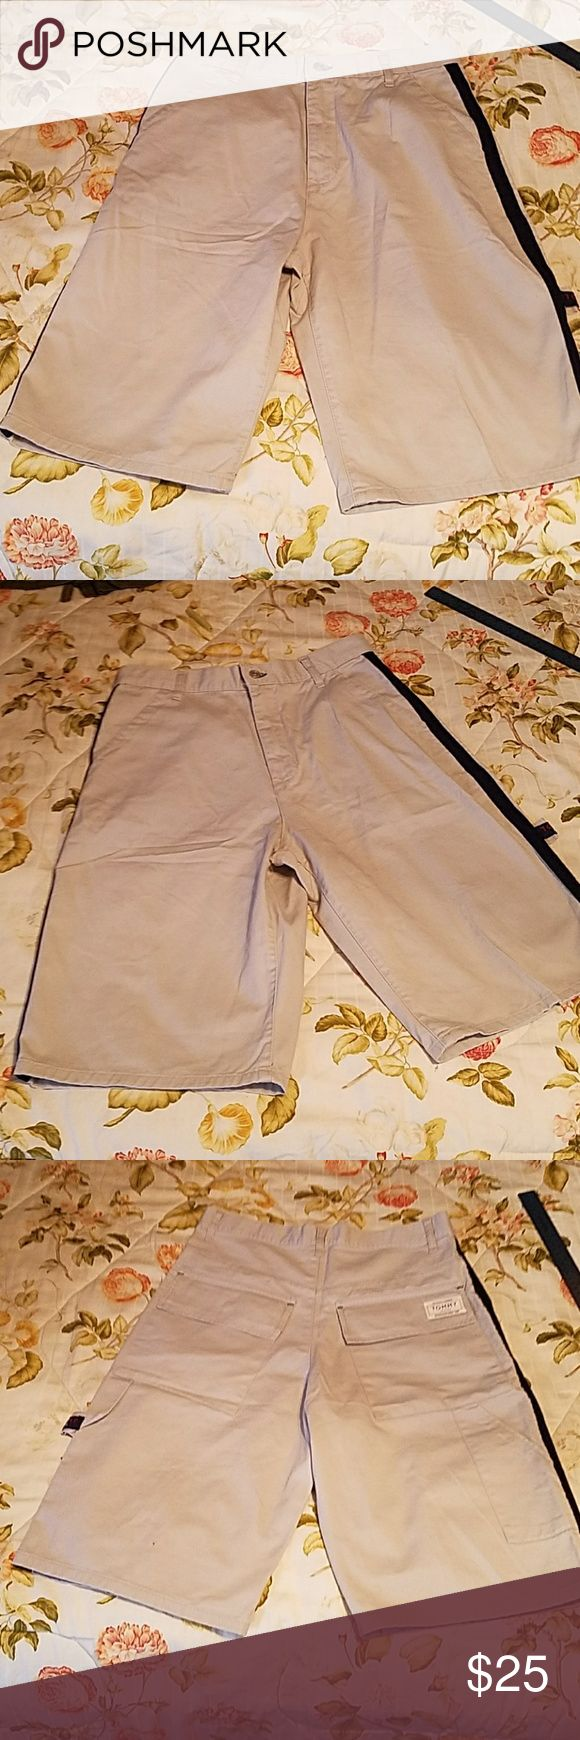 "Shorts - Mens - Thick material - TOMMY JEANS Excellent NWT condition -  measures: 32 1/2 "" waist - no stretch in these -   24 1/2"" from waist to hemline x 13"" Inside leg to crutch  -  from crutch to hem as shown on pics.  Colors: Please go by my pics colors only -  pretty right on! Tommy Jeans Shorts Jean Shorts"